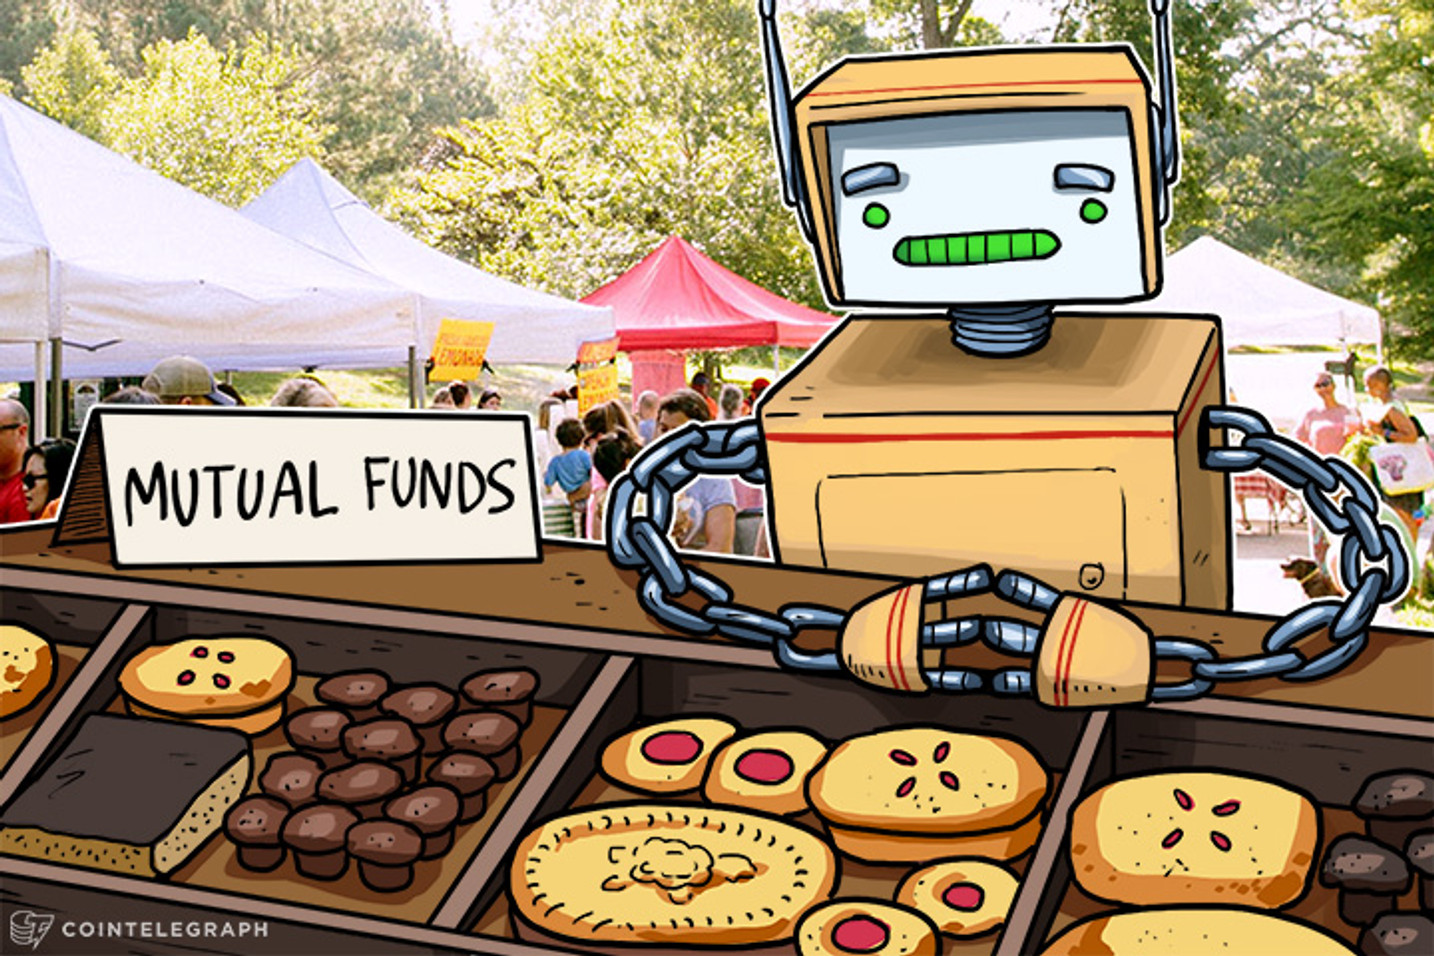 Blockchain is Right Solution for Fund Industry, Largest-Scale Test Successful